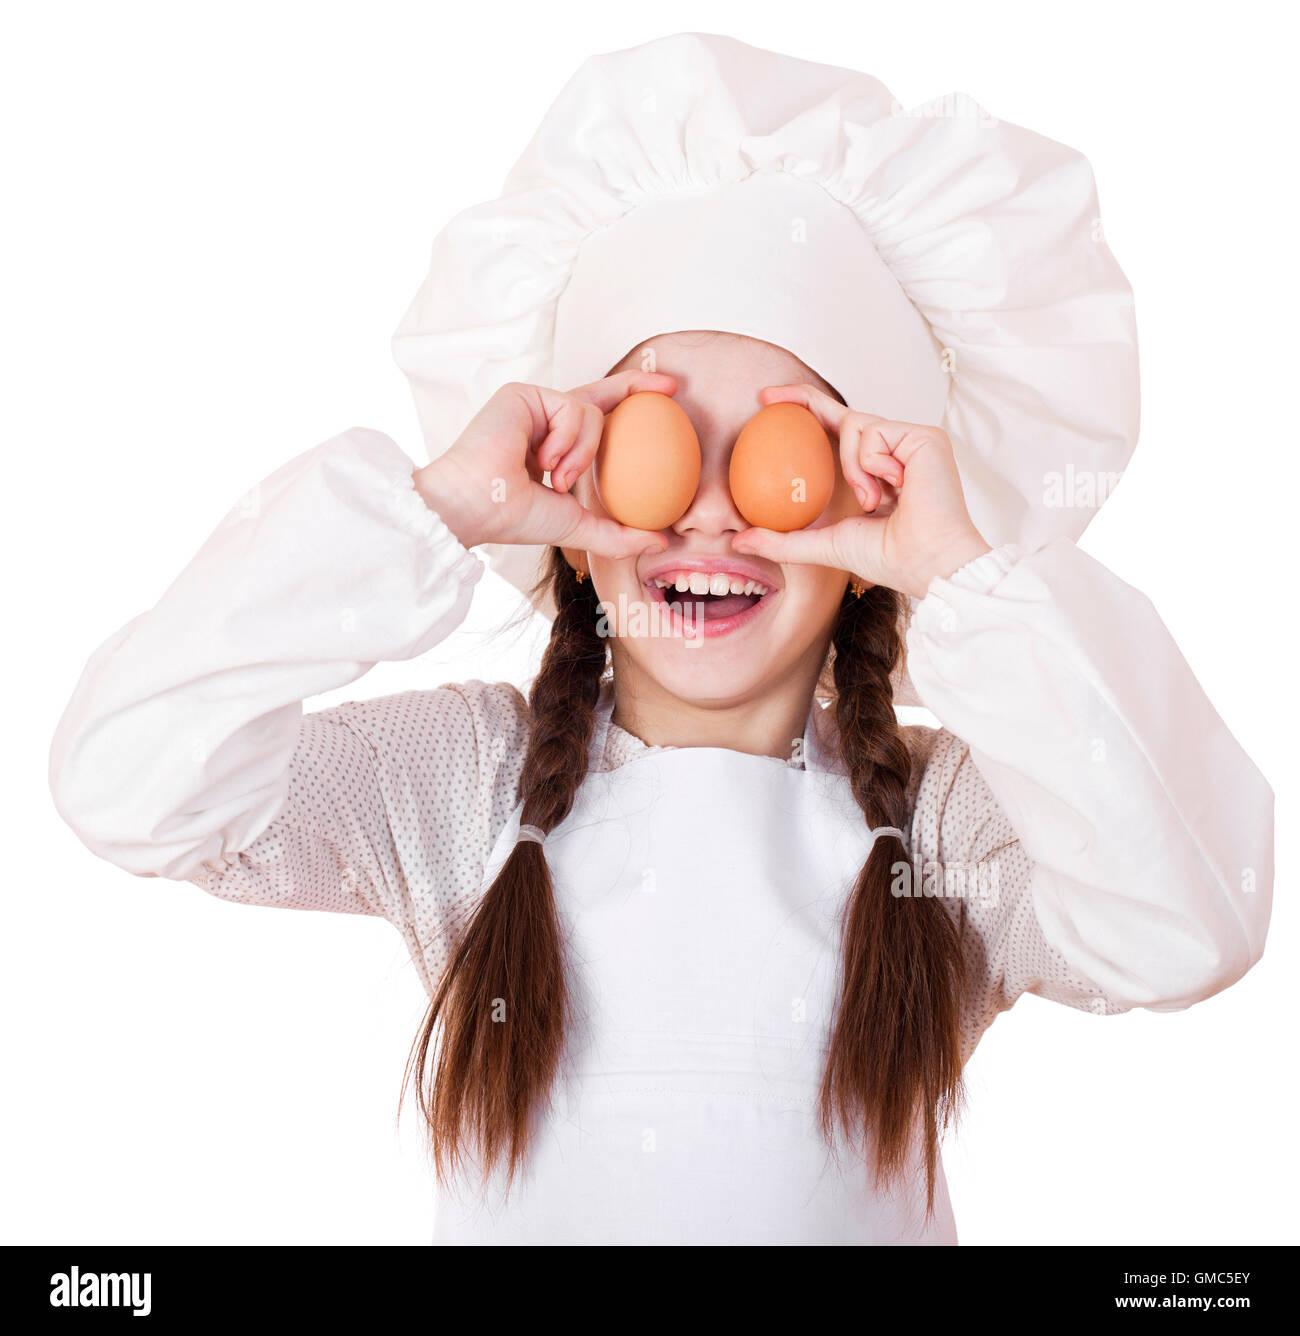 White apron girl - Portrait Of A Little Girl In A White Apron Holding Two Chicken Eggs Isolated On White Background